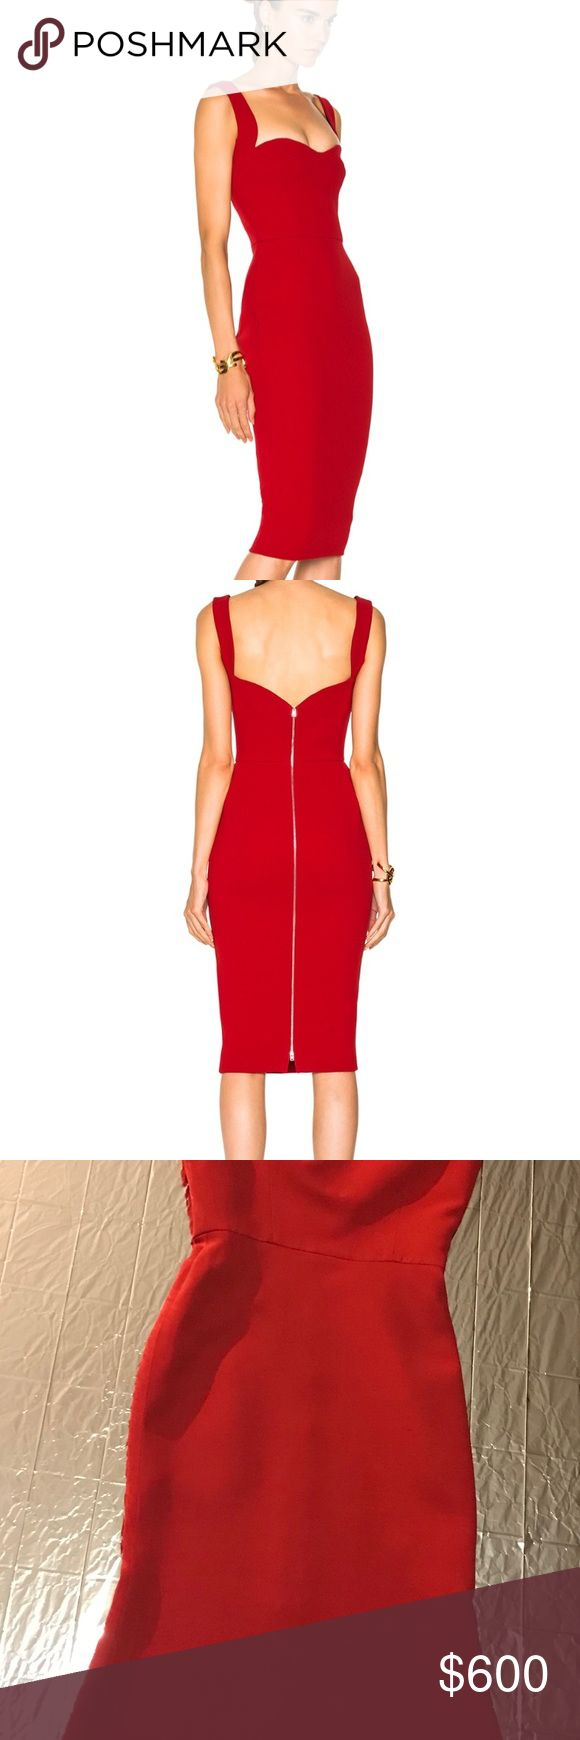 Victoria Beckham Cami dress Cute holiday dress. Perfect for date night   New year, Christmas, Valentine's Day  - I name it you wear it.  Size 8 uk 4 us. Measurements: Bust approx: 90 cm + stretch Waist approx; 65 cm + stretch Hips approx: 89-90 cm + stretch Length front shoulder/neck approx: 113 cm Let me know if you have any questions. Read Less Victoria Beckham Dresses Midi